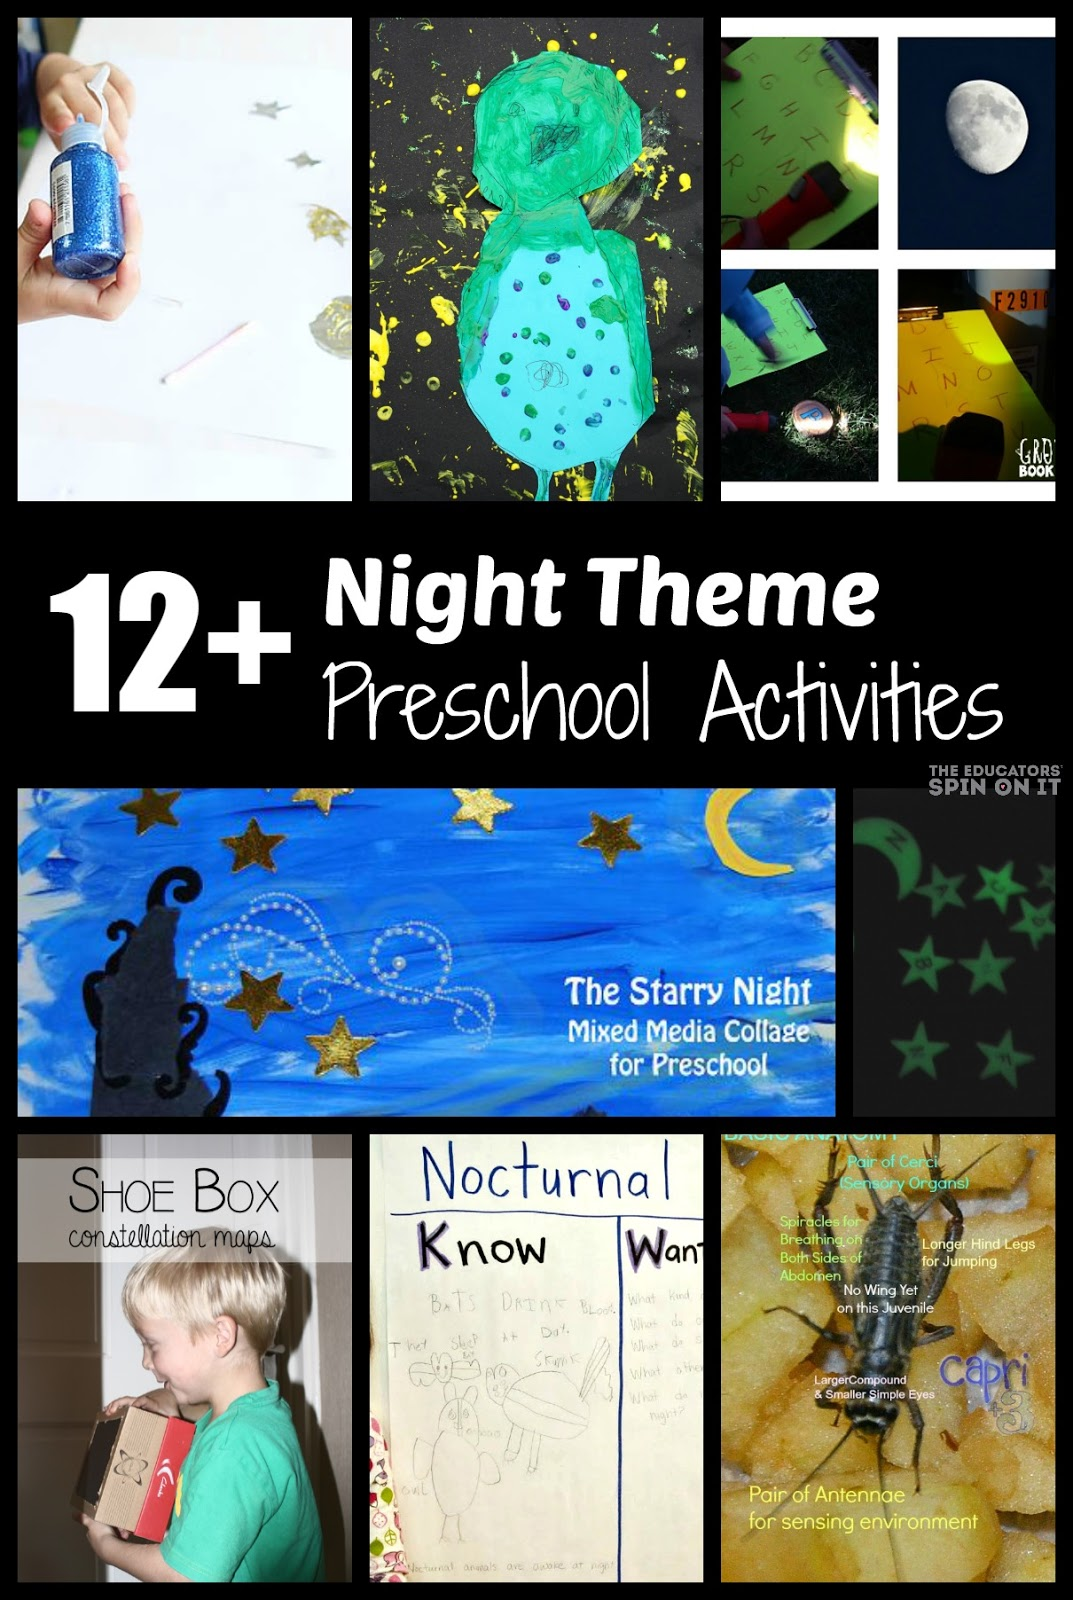 Nighttime Preschool Activities Night Owl Painting And Books Playfulpreschool